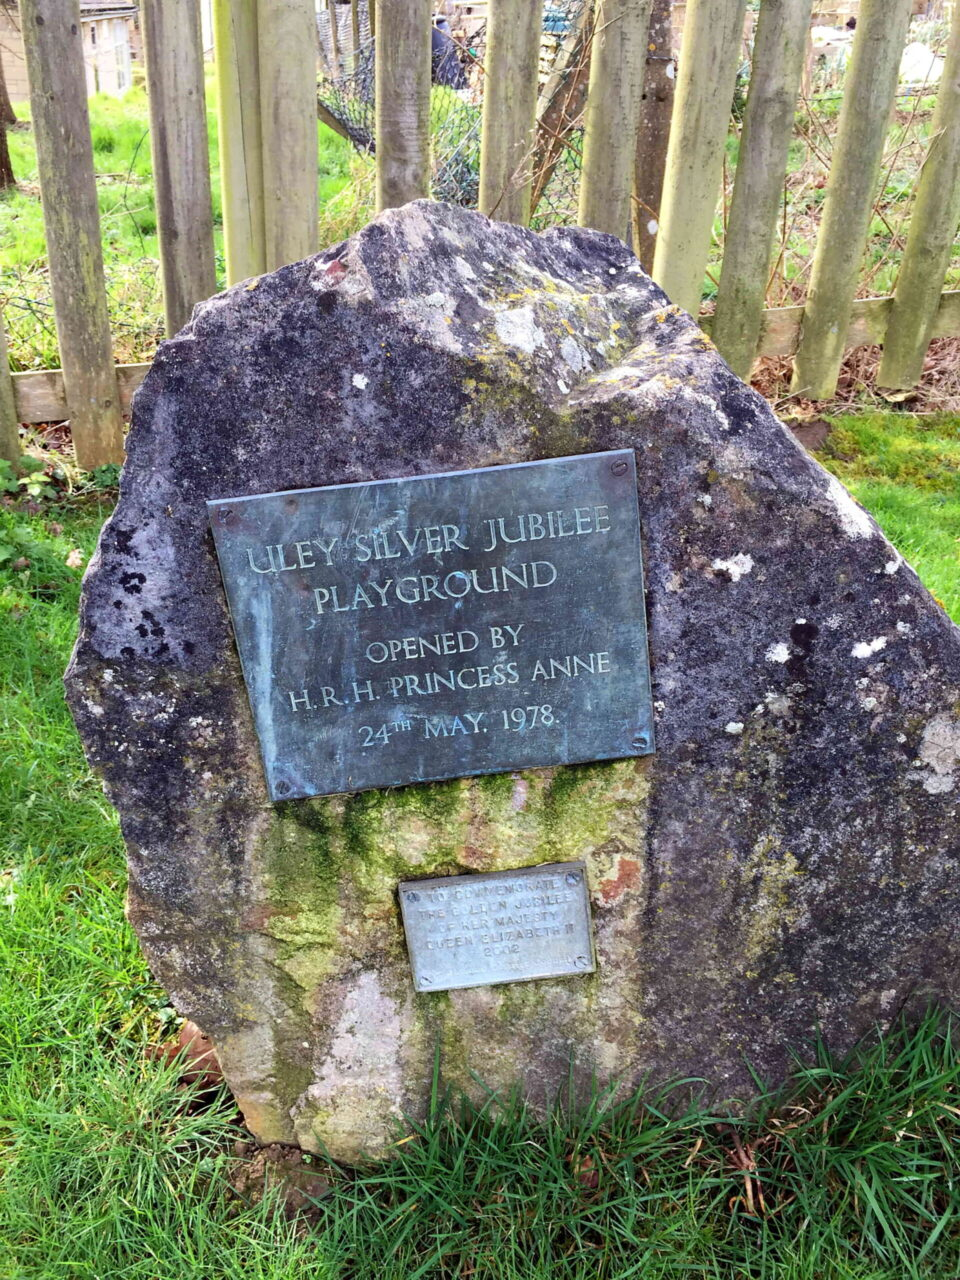 Silver Jubilee Playground Memorial Stone. Note the small plaque dedicated to the Queen's Golden Jubilee in 2002, when some refurbishment work was done.